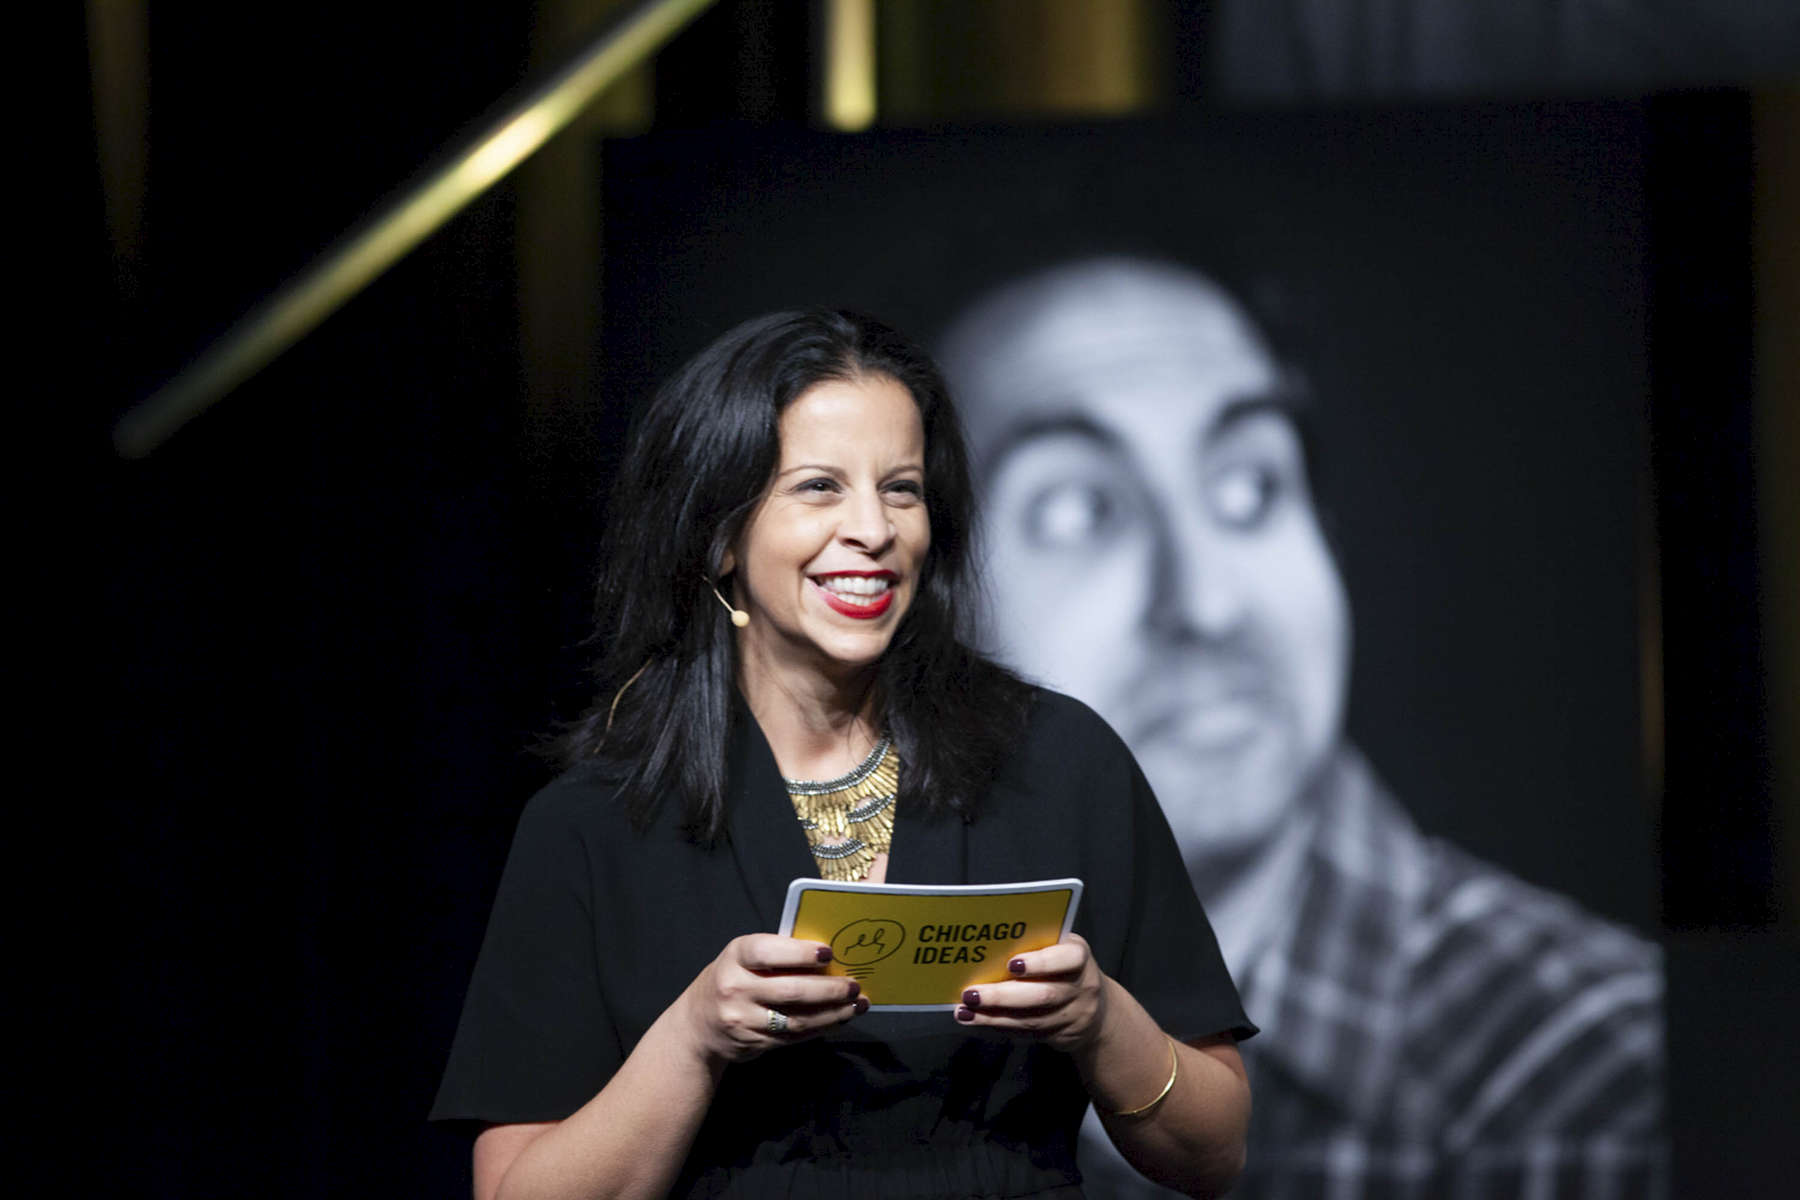 """CHICAGO, IL - OCTOBER 15: Amanda Salhoot presents the panelists for, """"Blockchain: The Future of Money, Power and Culture"""" presented by BartlitBeck during Chicago Ideas Week.(Photo by Beth Rooney/Chicago Ideas Week)"""